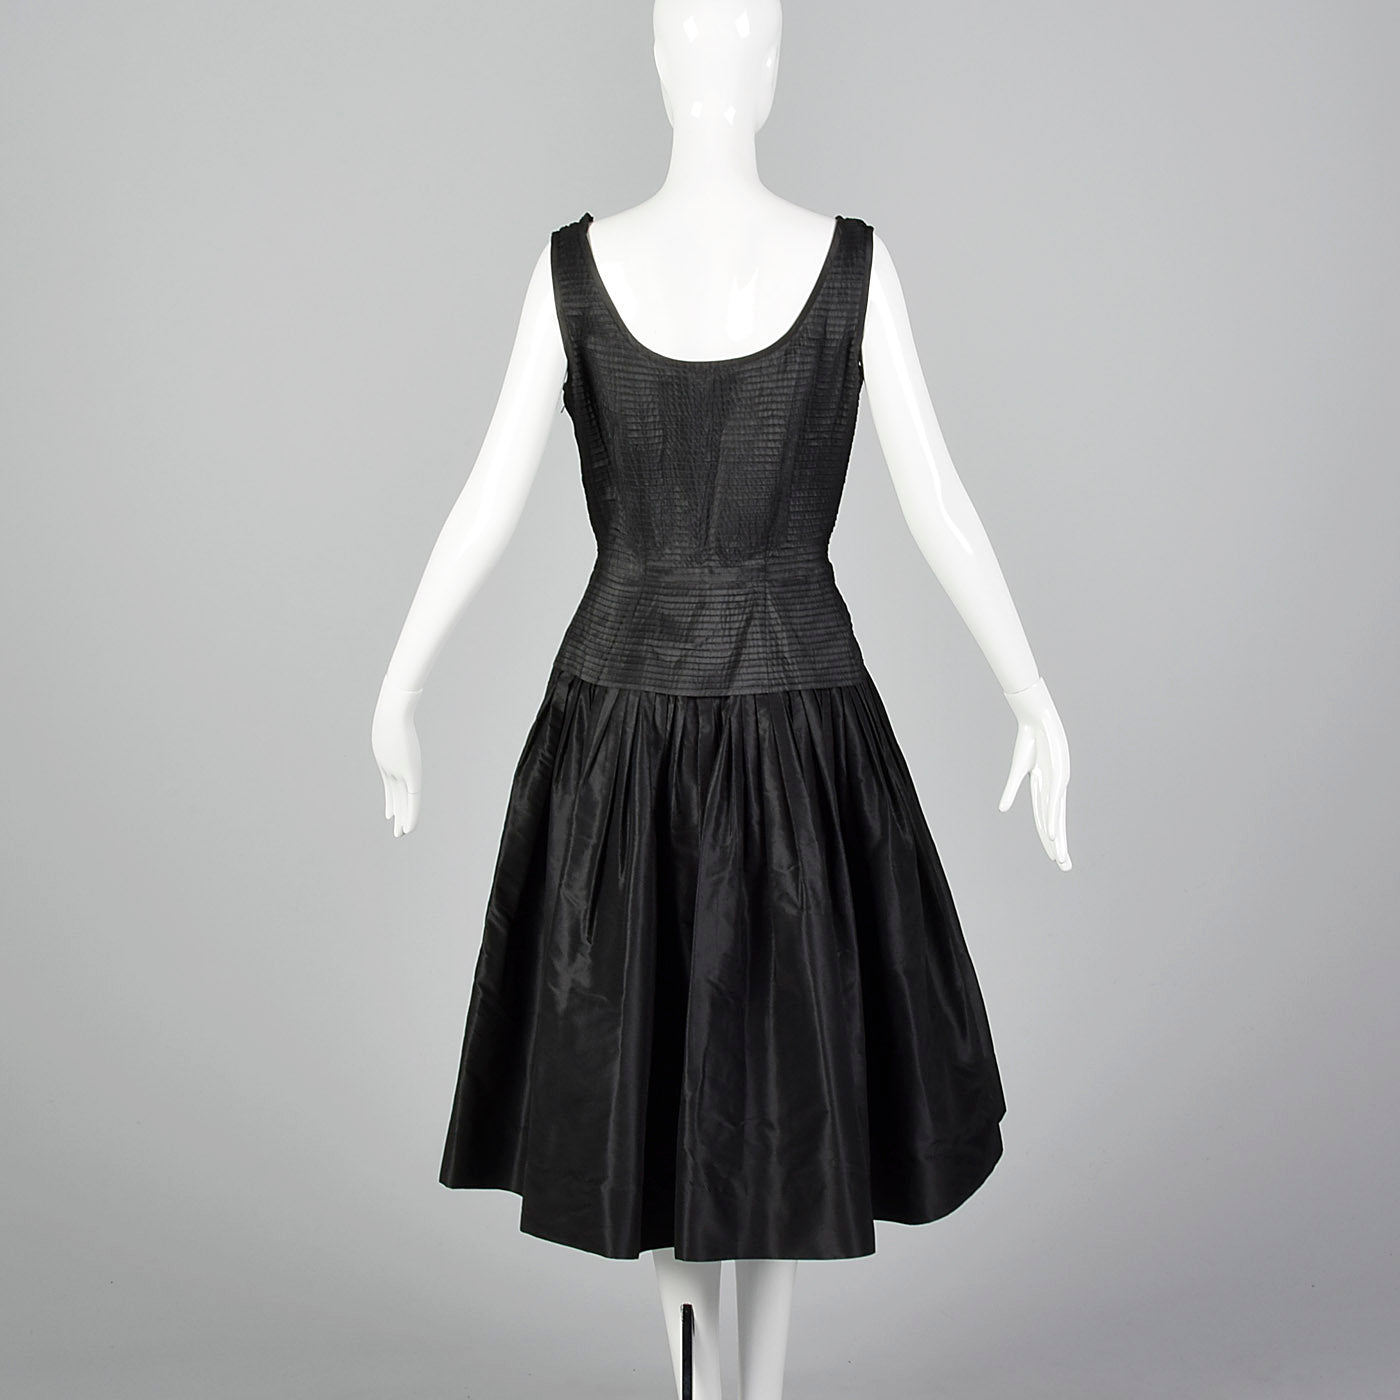 1950s Mollie Parnis Black Dress with Pleated Bodice